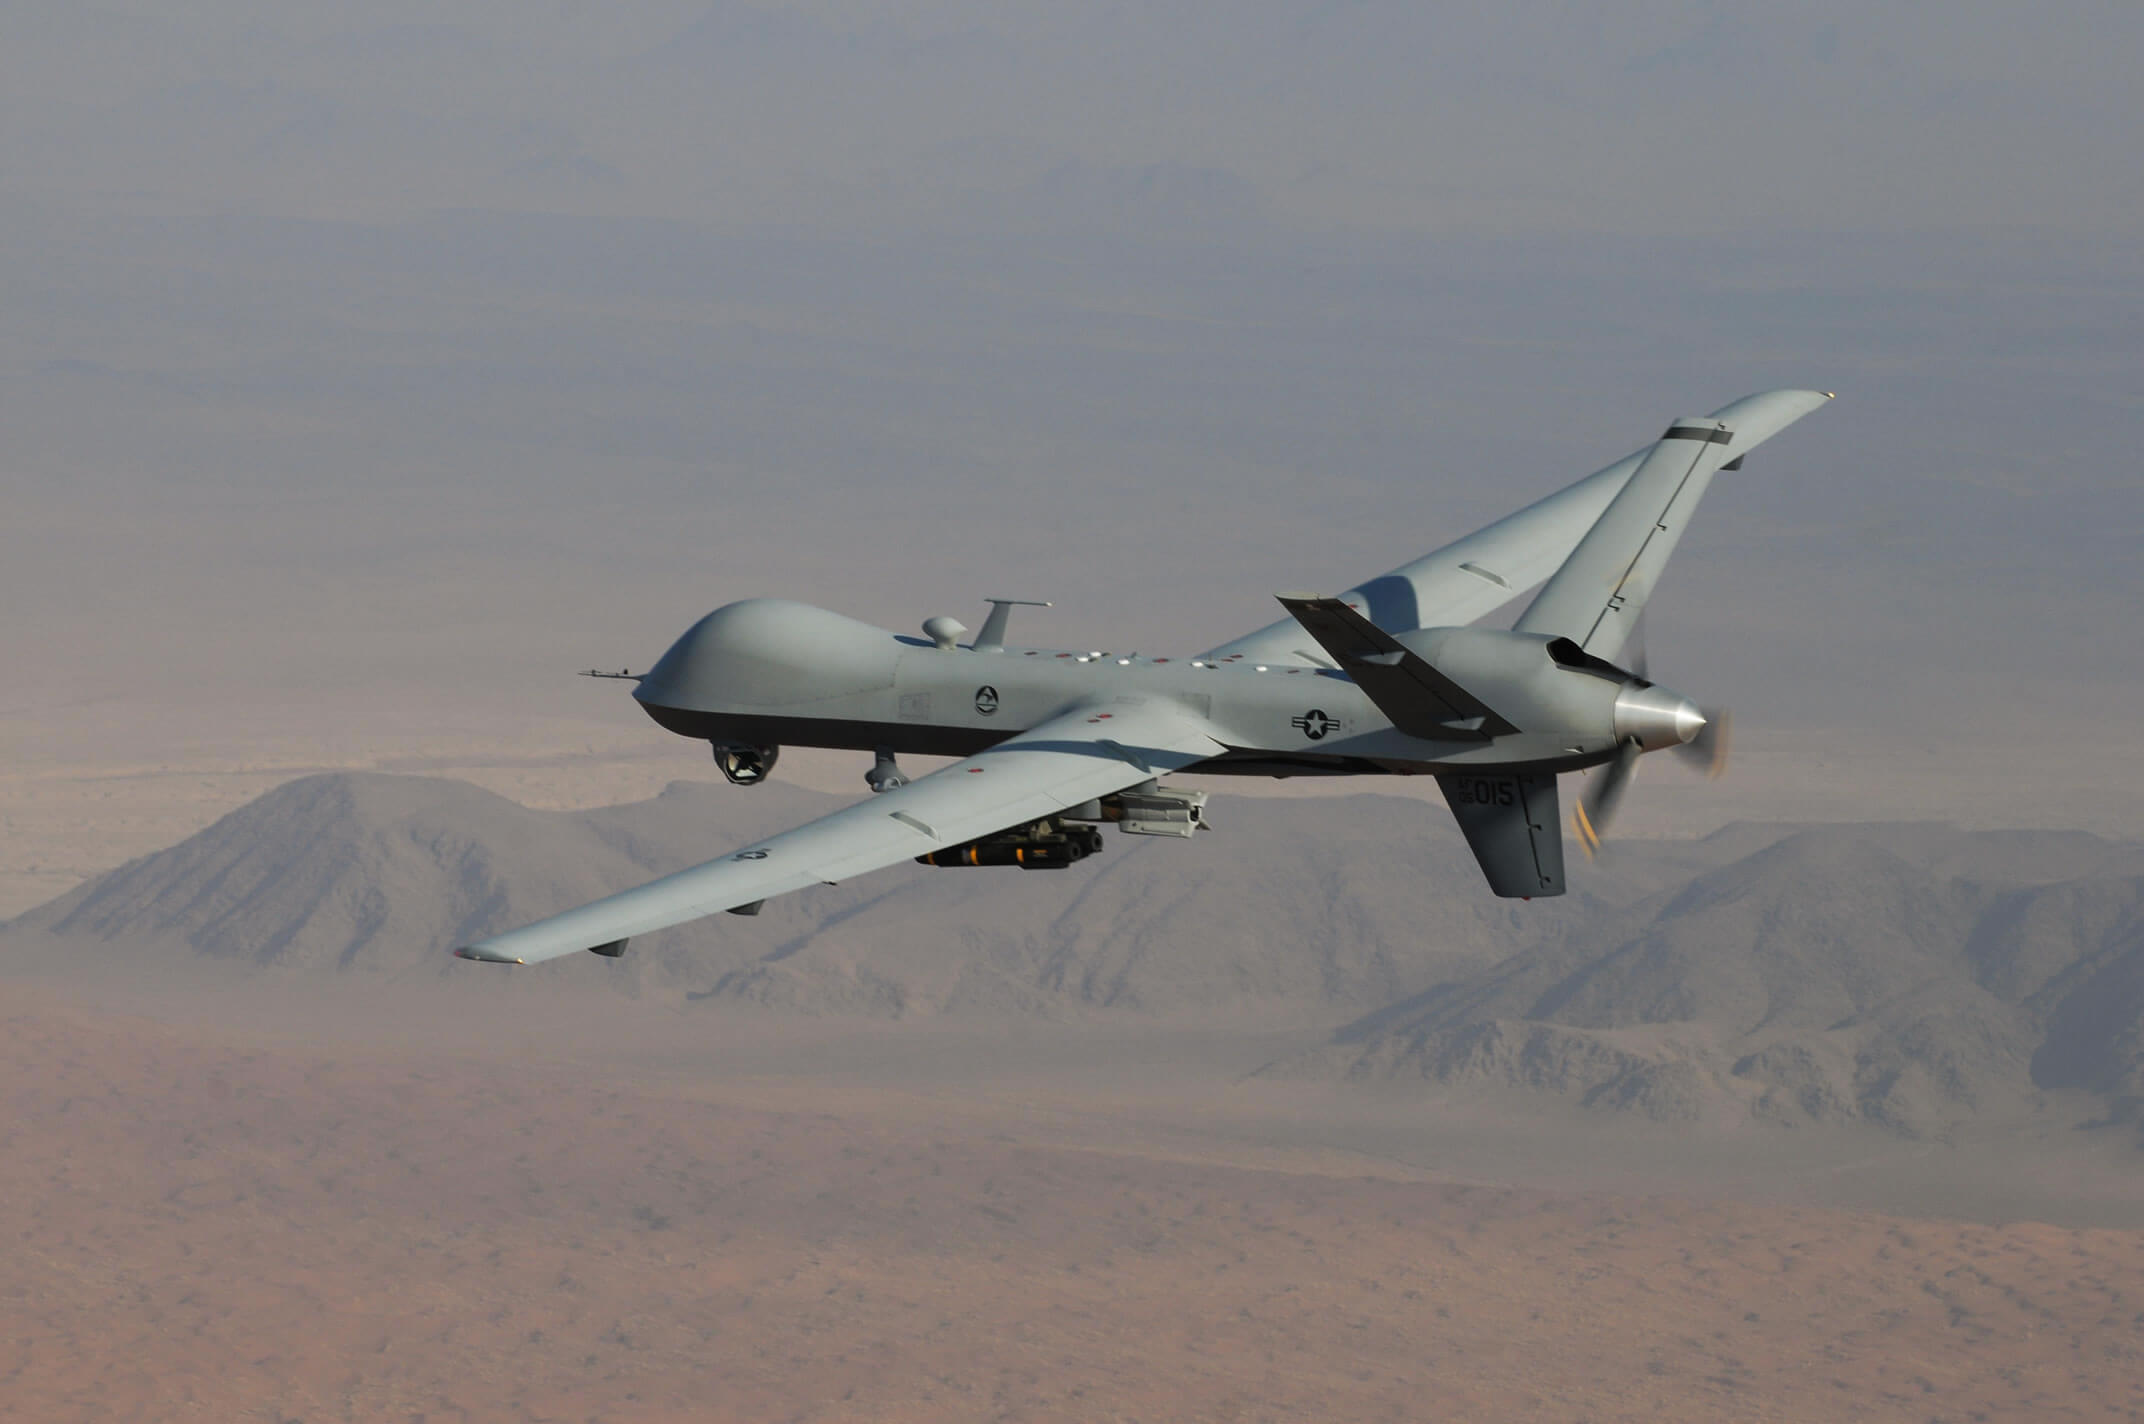 The Pentagon deployed more drones domestically last year than the previous five years combined